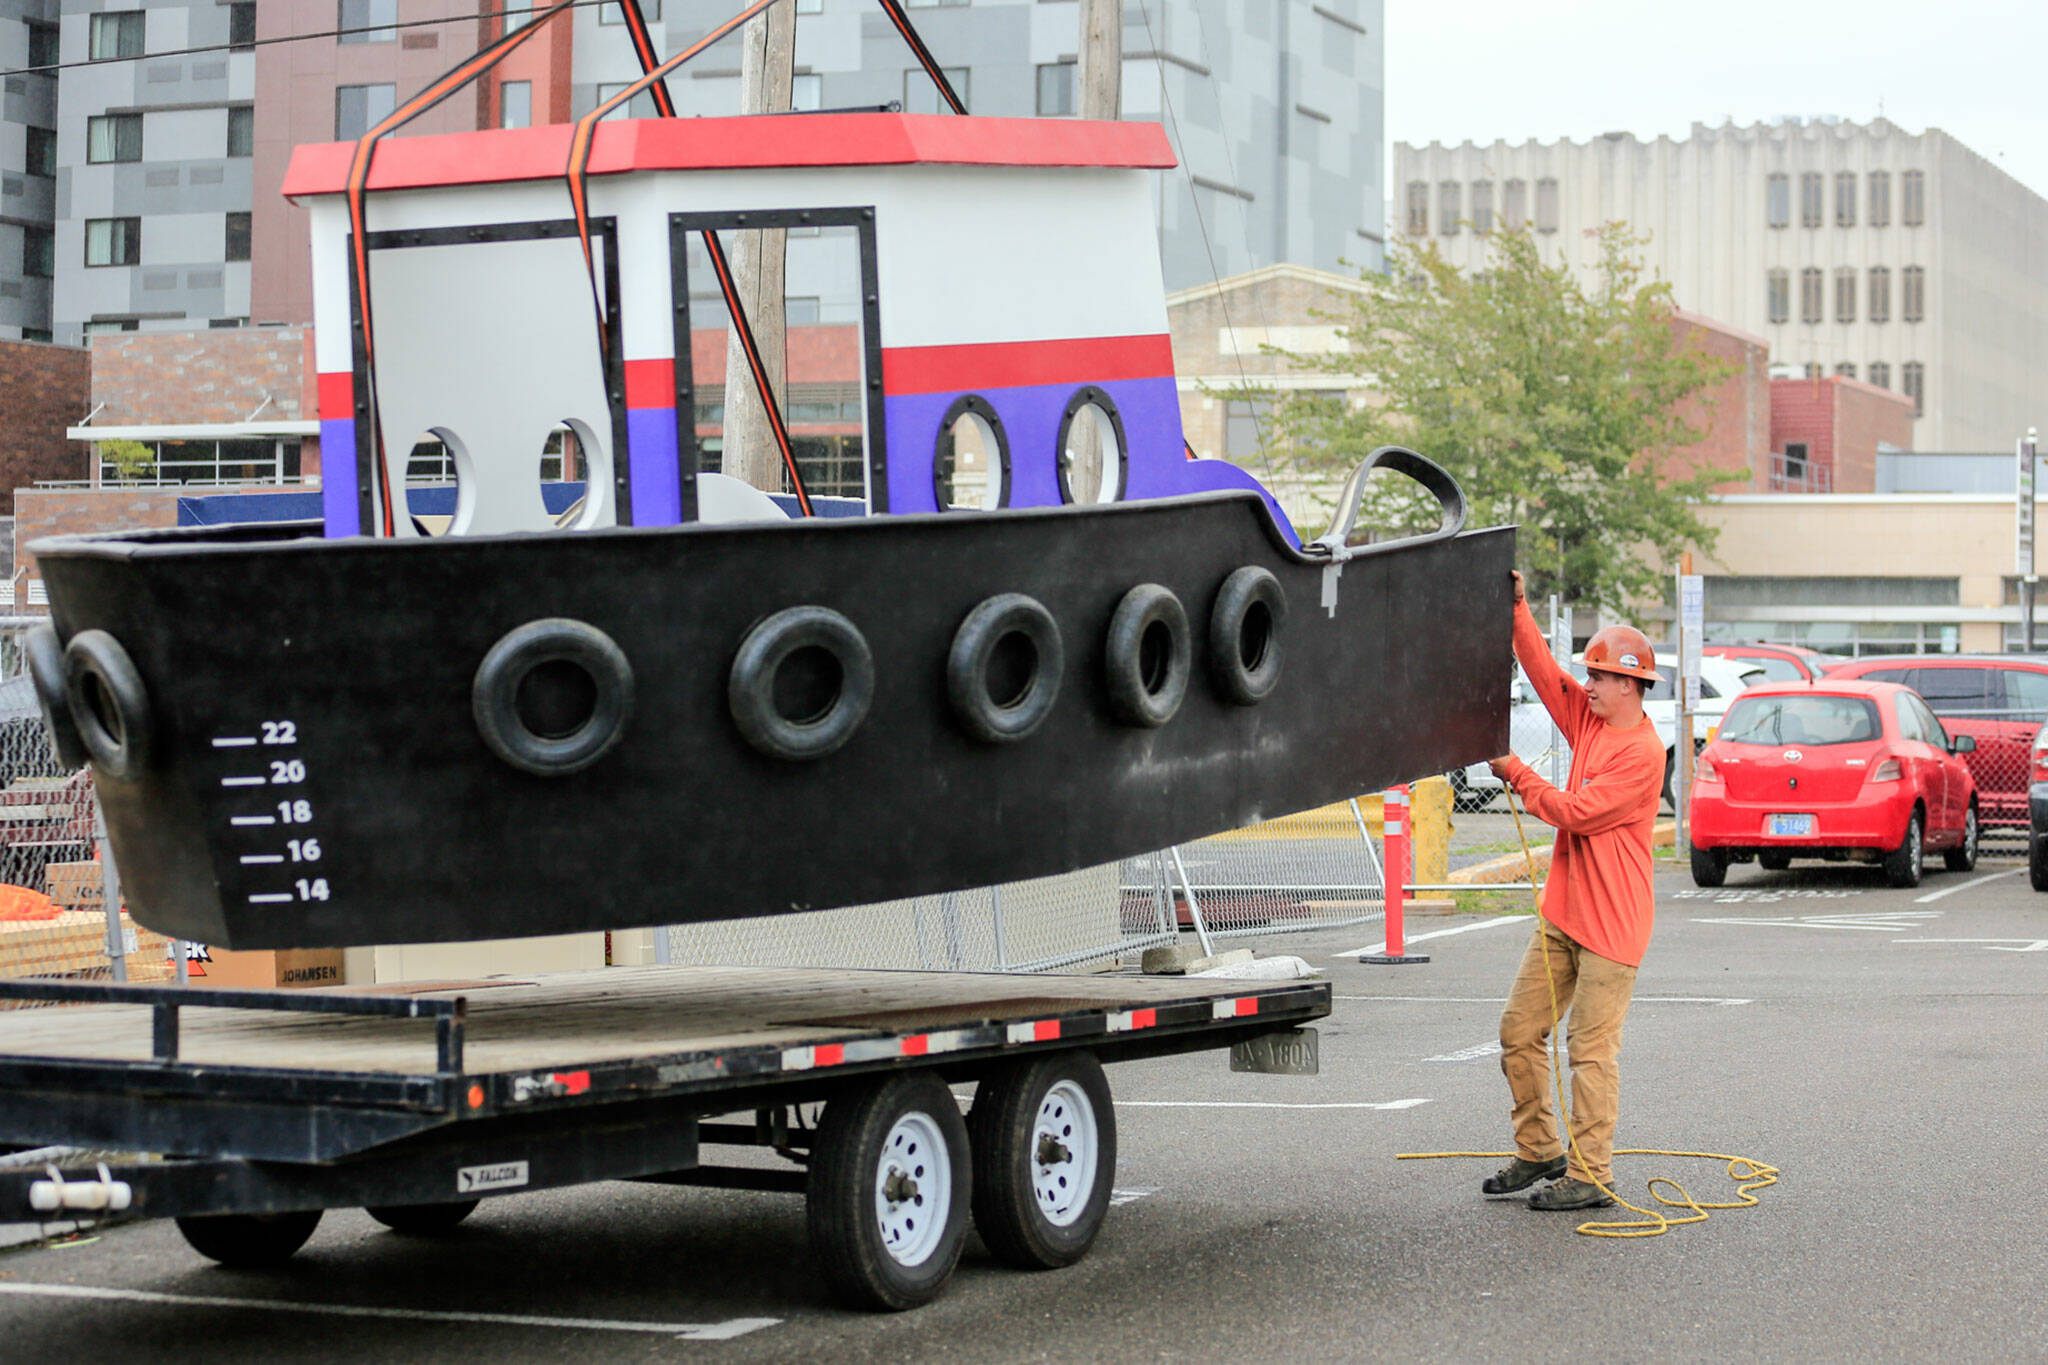 A model tugboat exhibit is hoisted Sept. 27 into the expansion of the Imagine Children's Museum in Everett. (Kevin Clark / The Herald)